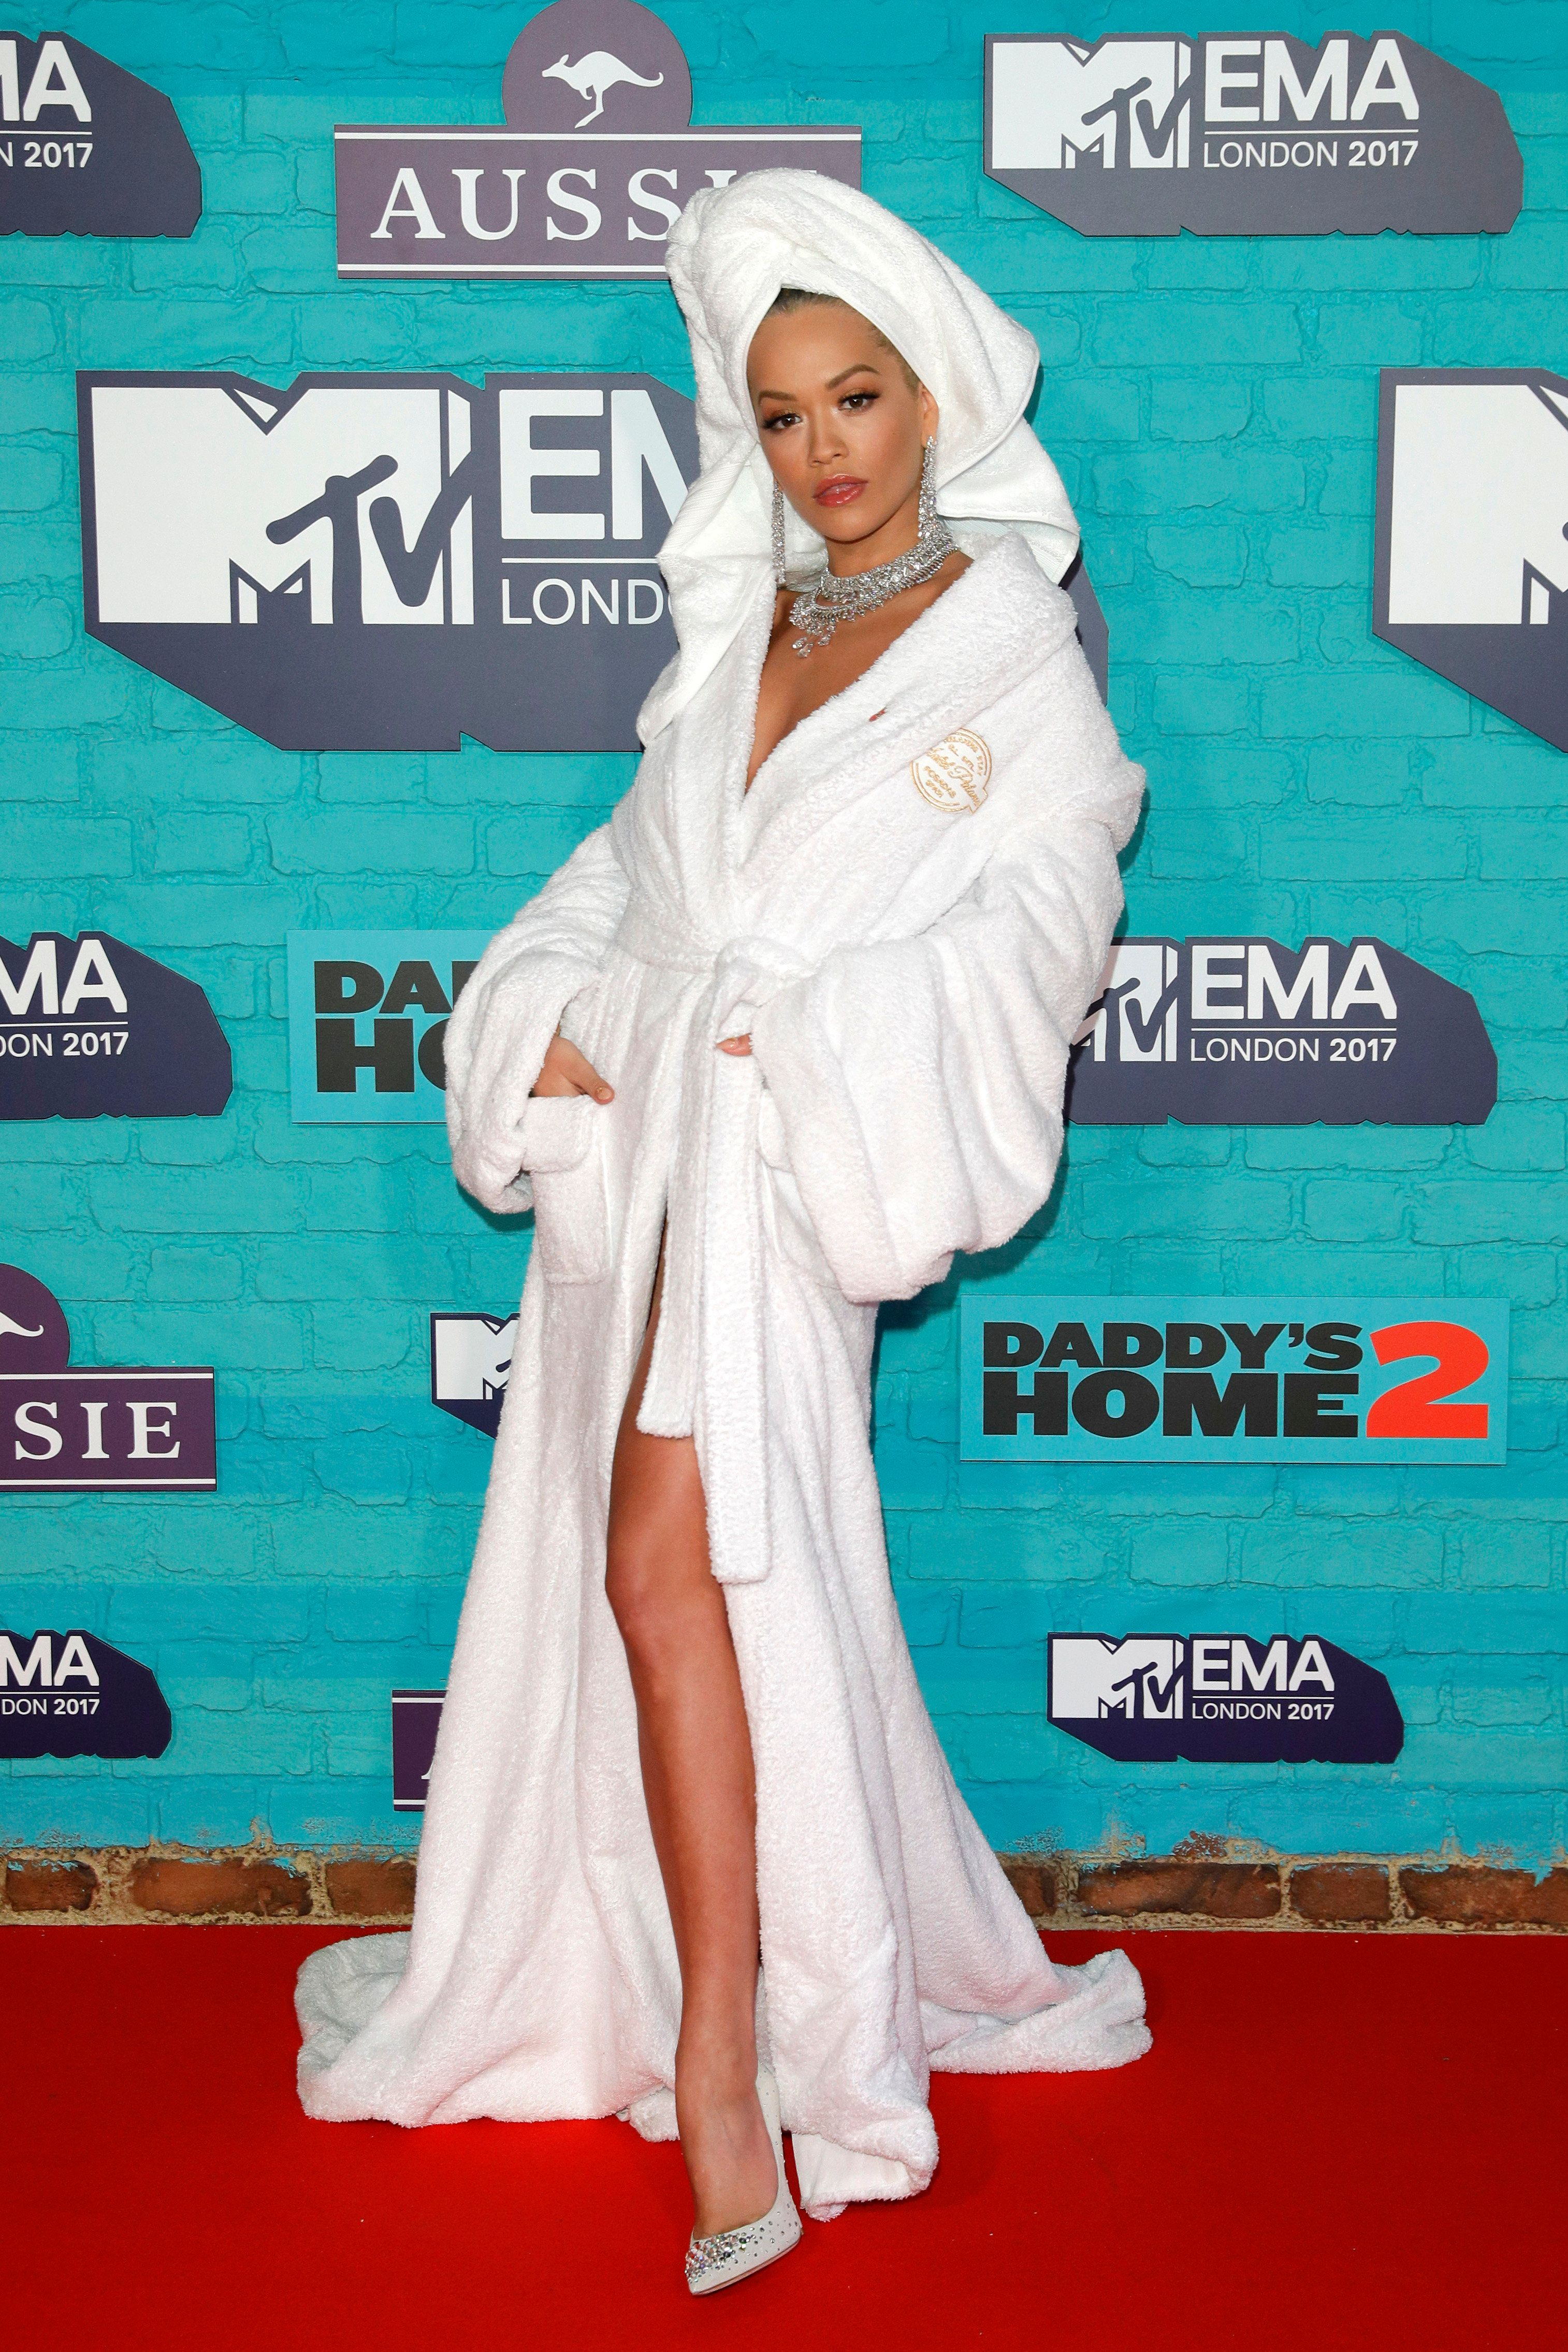 LONDON, ENGLAND - NOVEMBER 12:  Rita Ora attends the MTV EMAs 2017 held at The SSE Arena, Wembley on November 12, 2017 in London, England.  (Photo by Andreas Rentz/Getty Images for MTV)